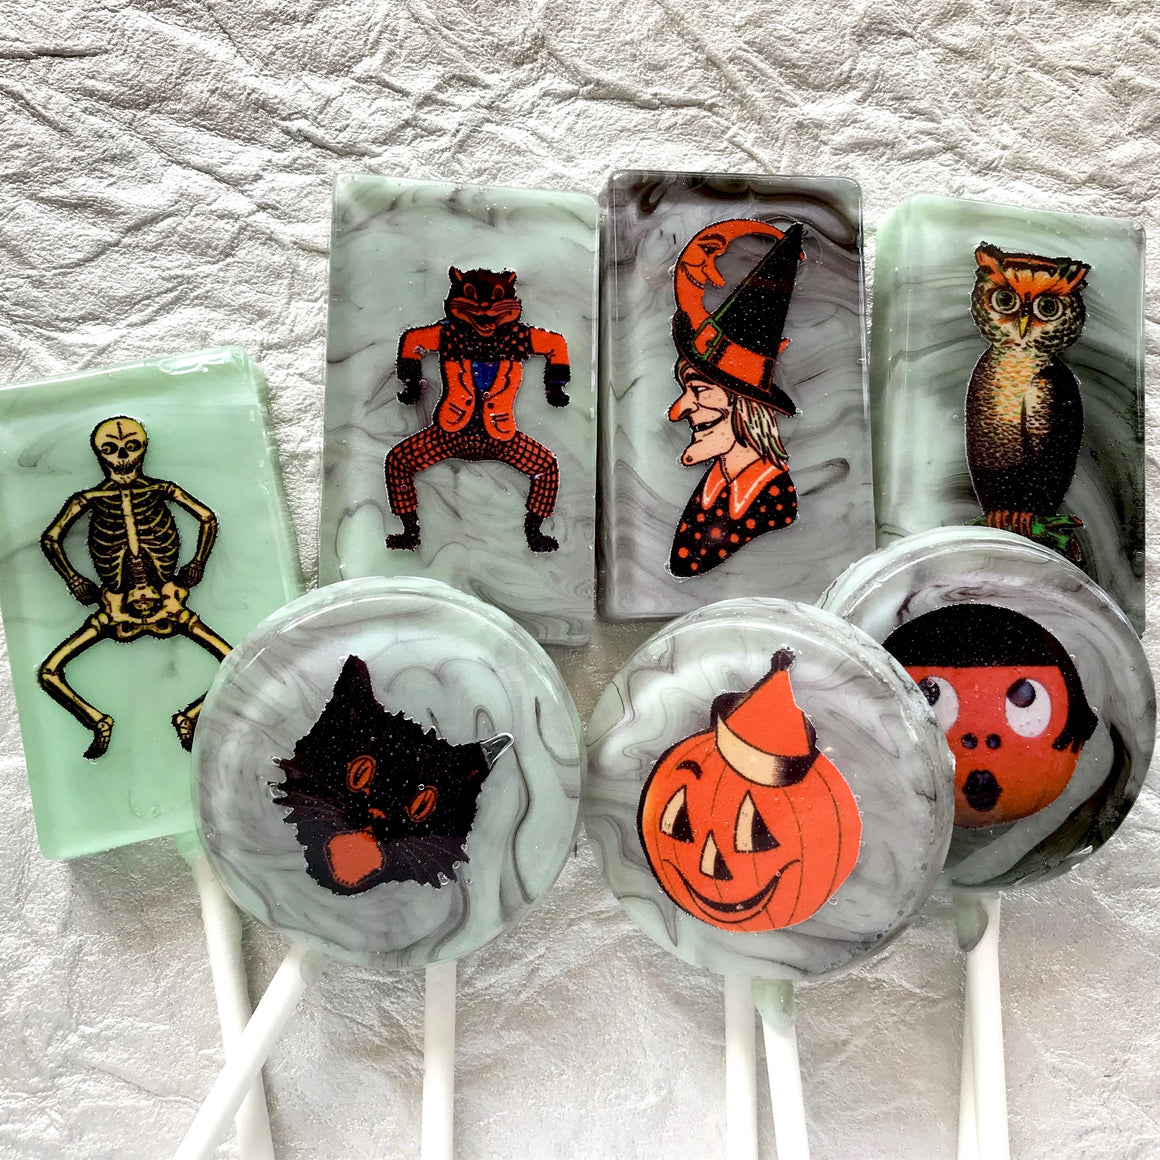 Kitschy Halloween Cutouts 5 piece lollipop set by I Want Candy!